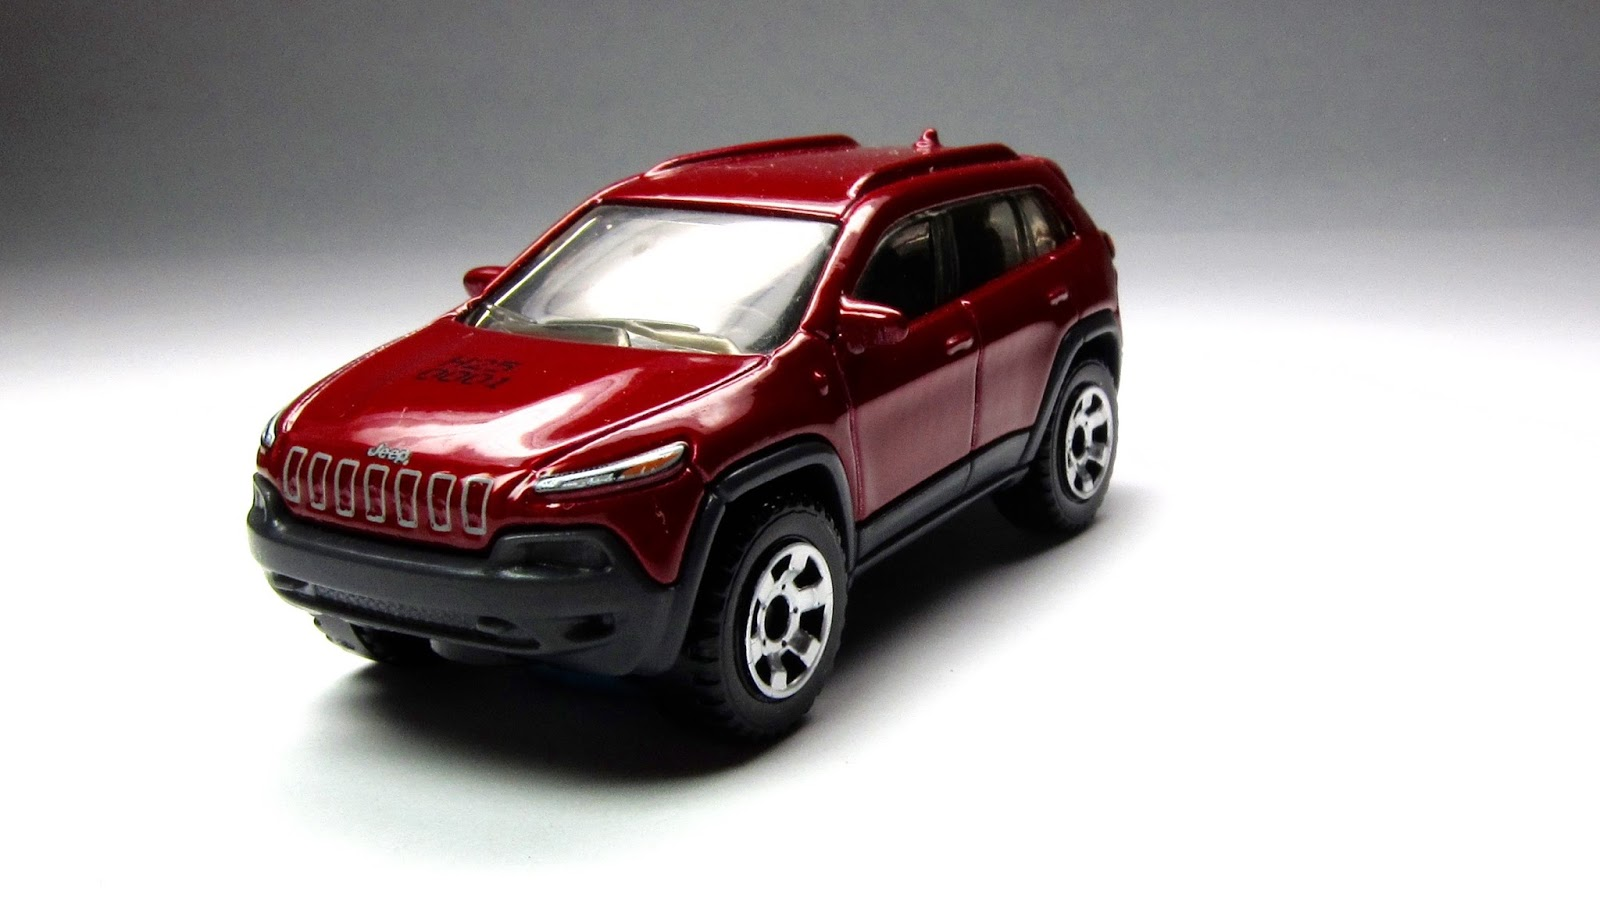 2014-jeep-cherokee-general-discussion/141922-die-cast-trailhawk.html